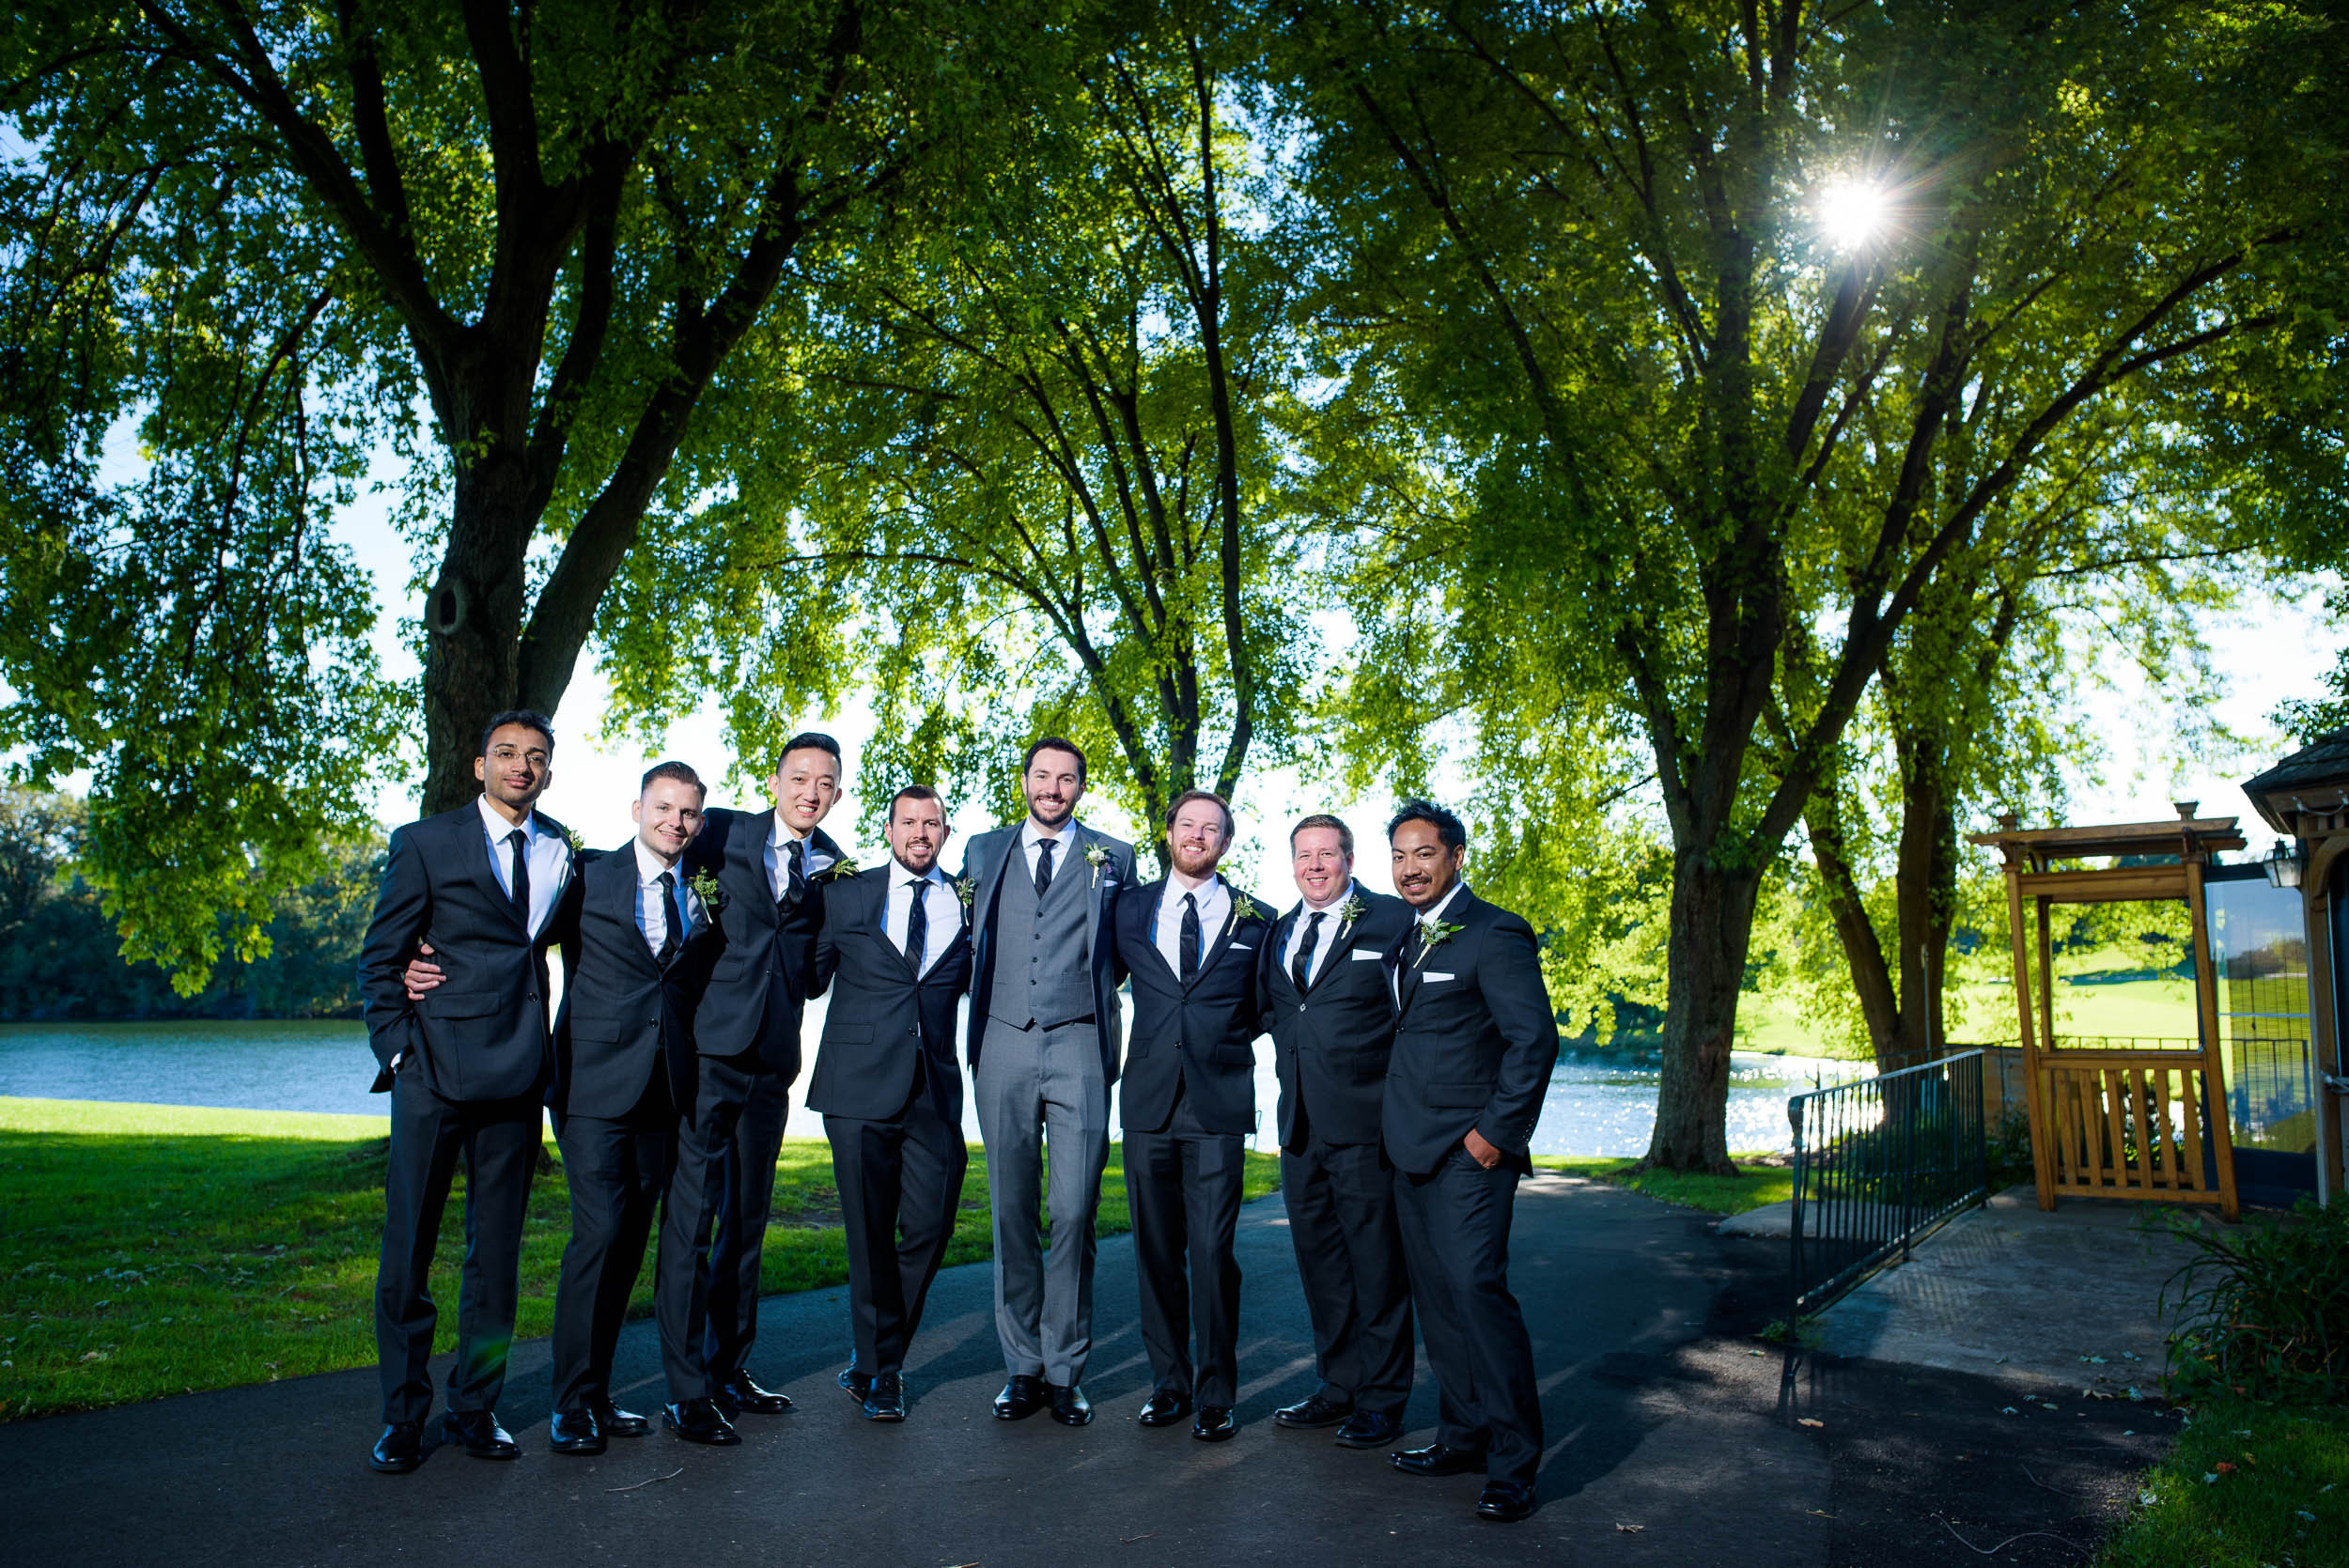 Groomsmen poses for photos at Grand Geneve Resort Fall Chicago Wedding captured by J. Brown Photography. Visit jbrownphotography.com for more wedding inspiration!